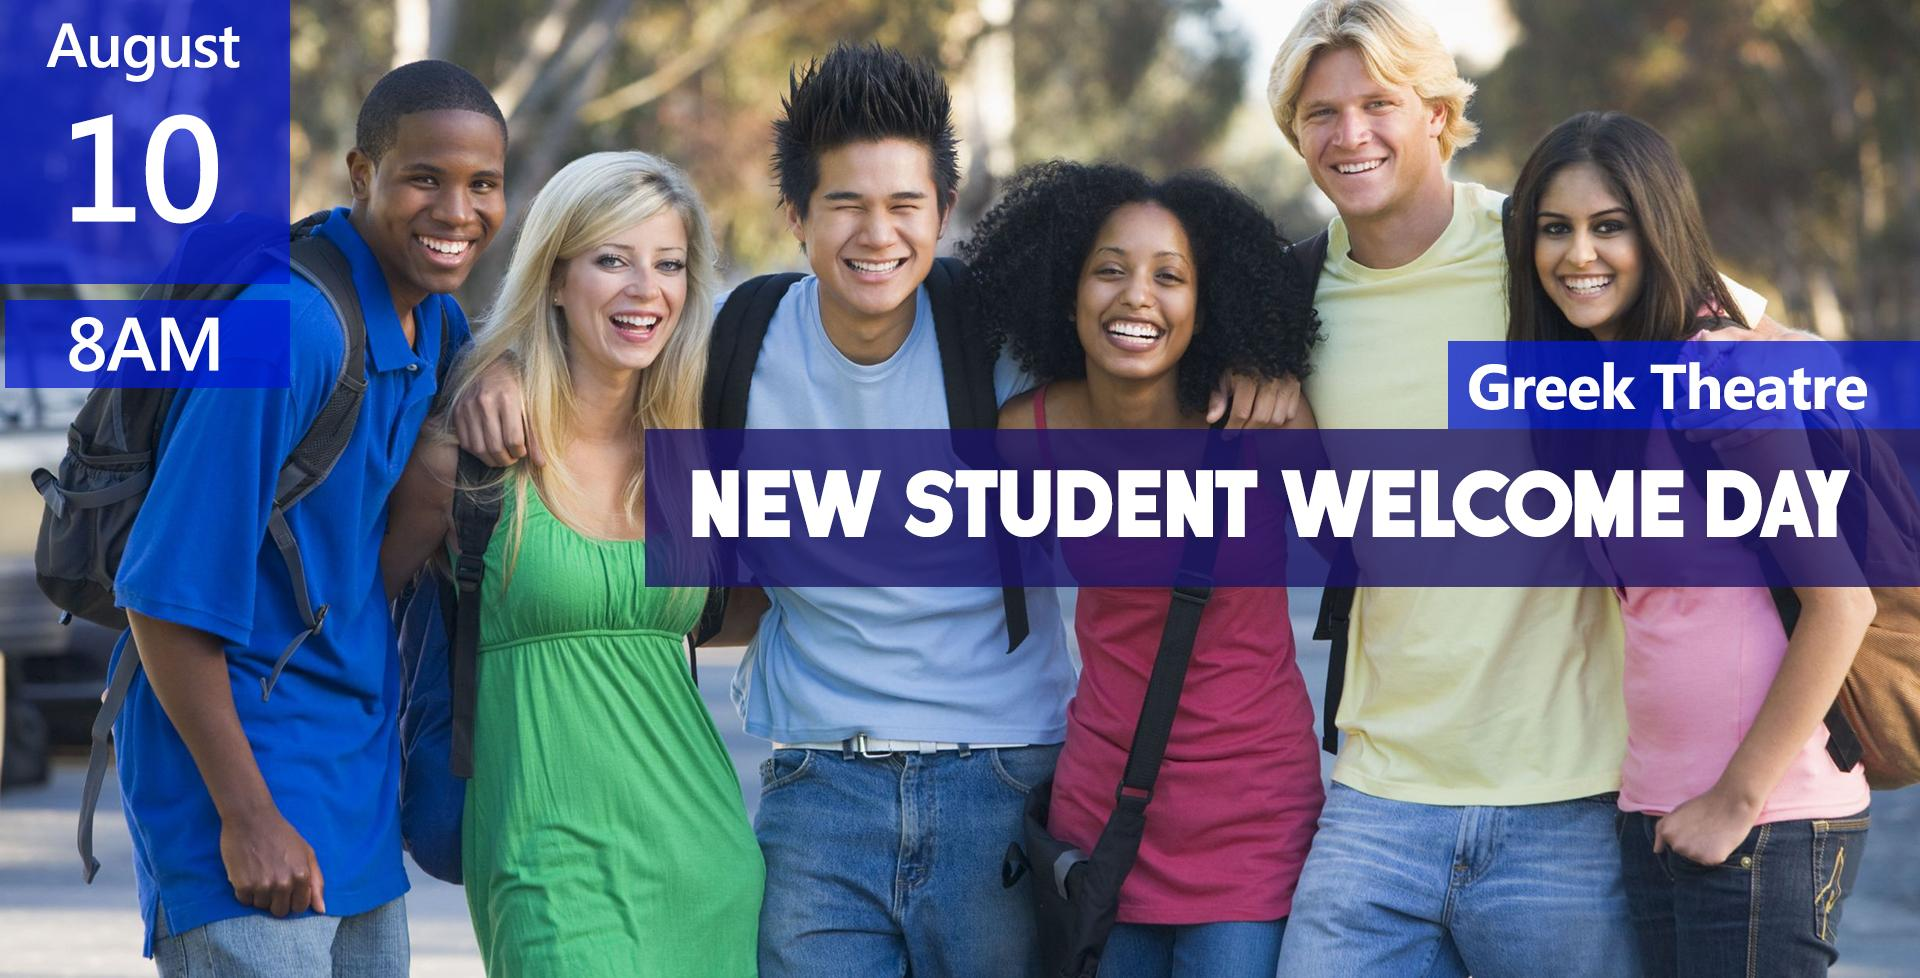 August 10 > New Student Welcome Day